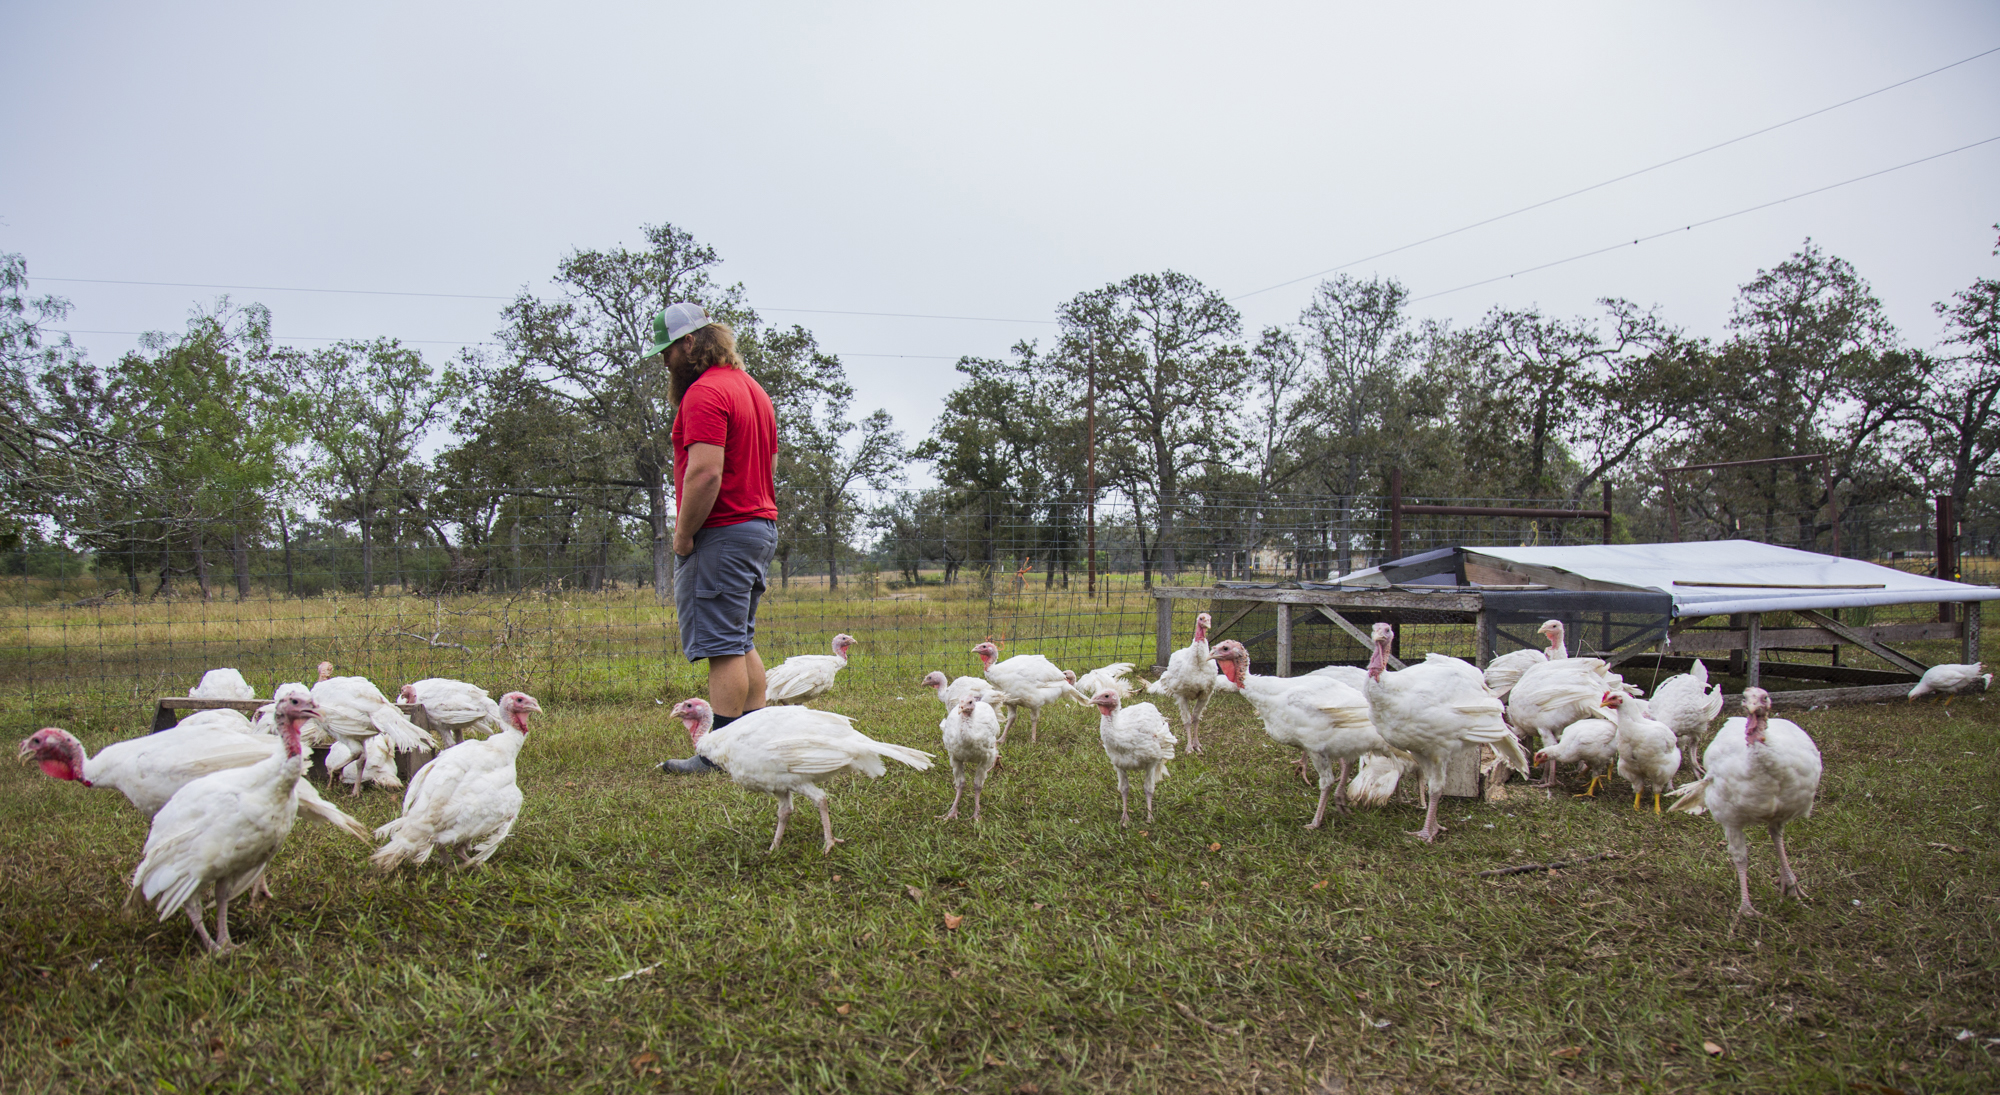 Keller checks on his flock of turkeys with a cup of coffee in hand a few weeks after letting them out to free range on his farm.